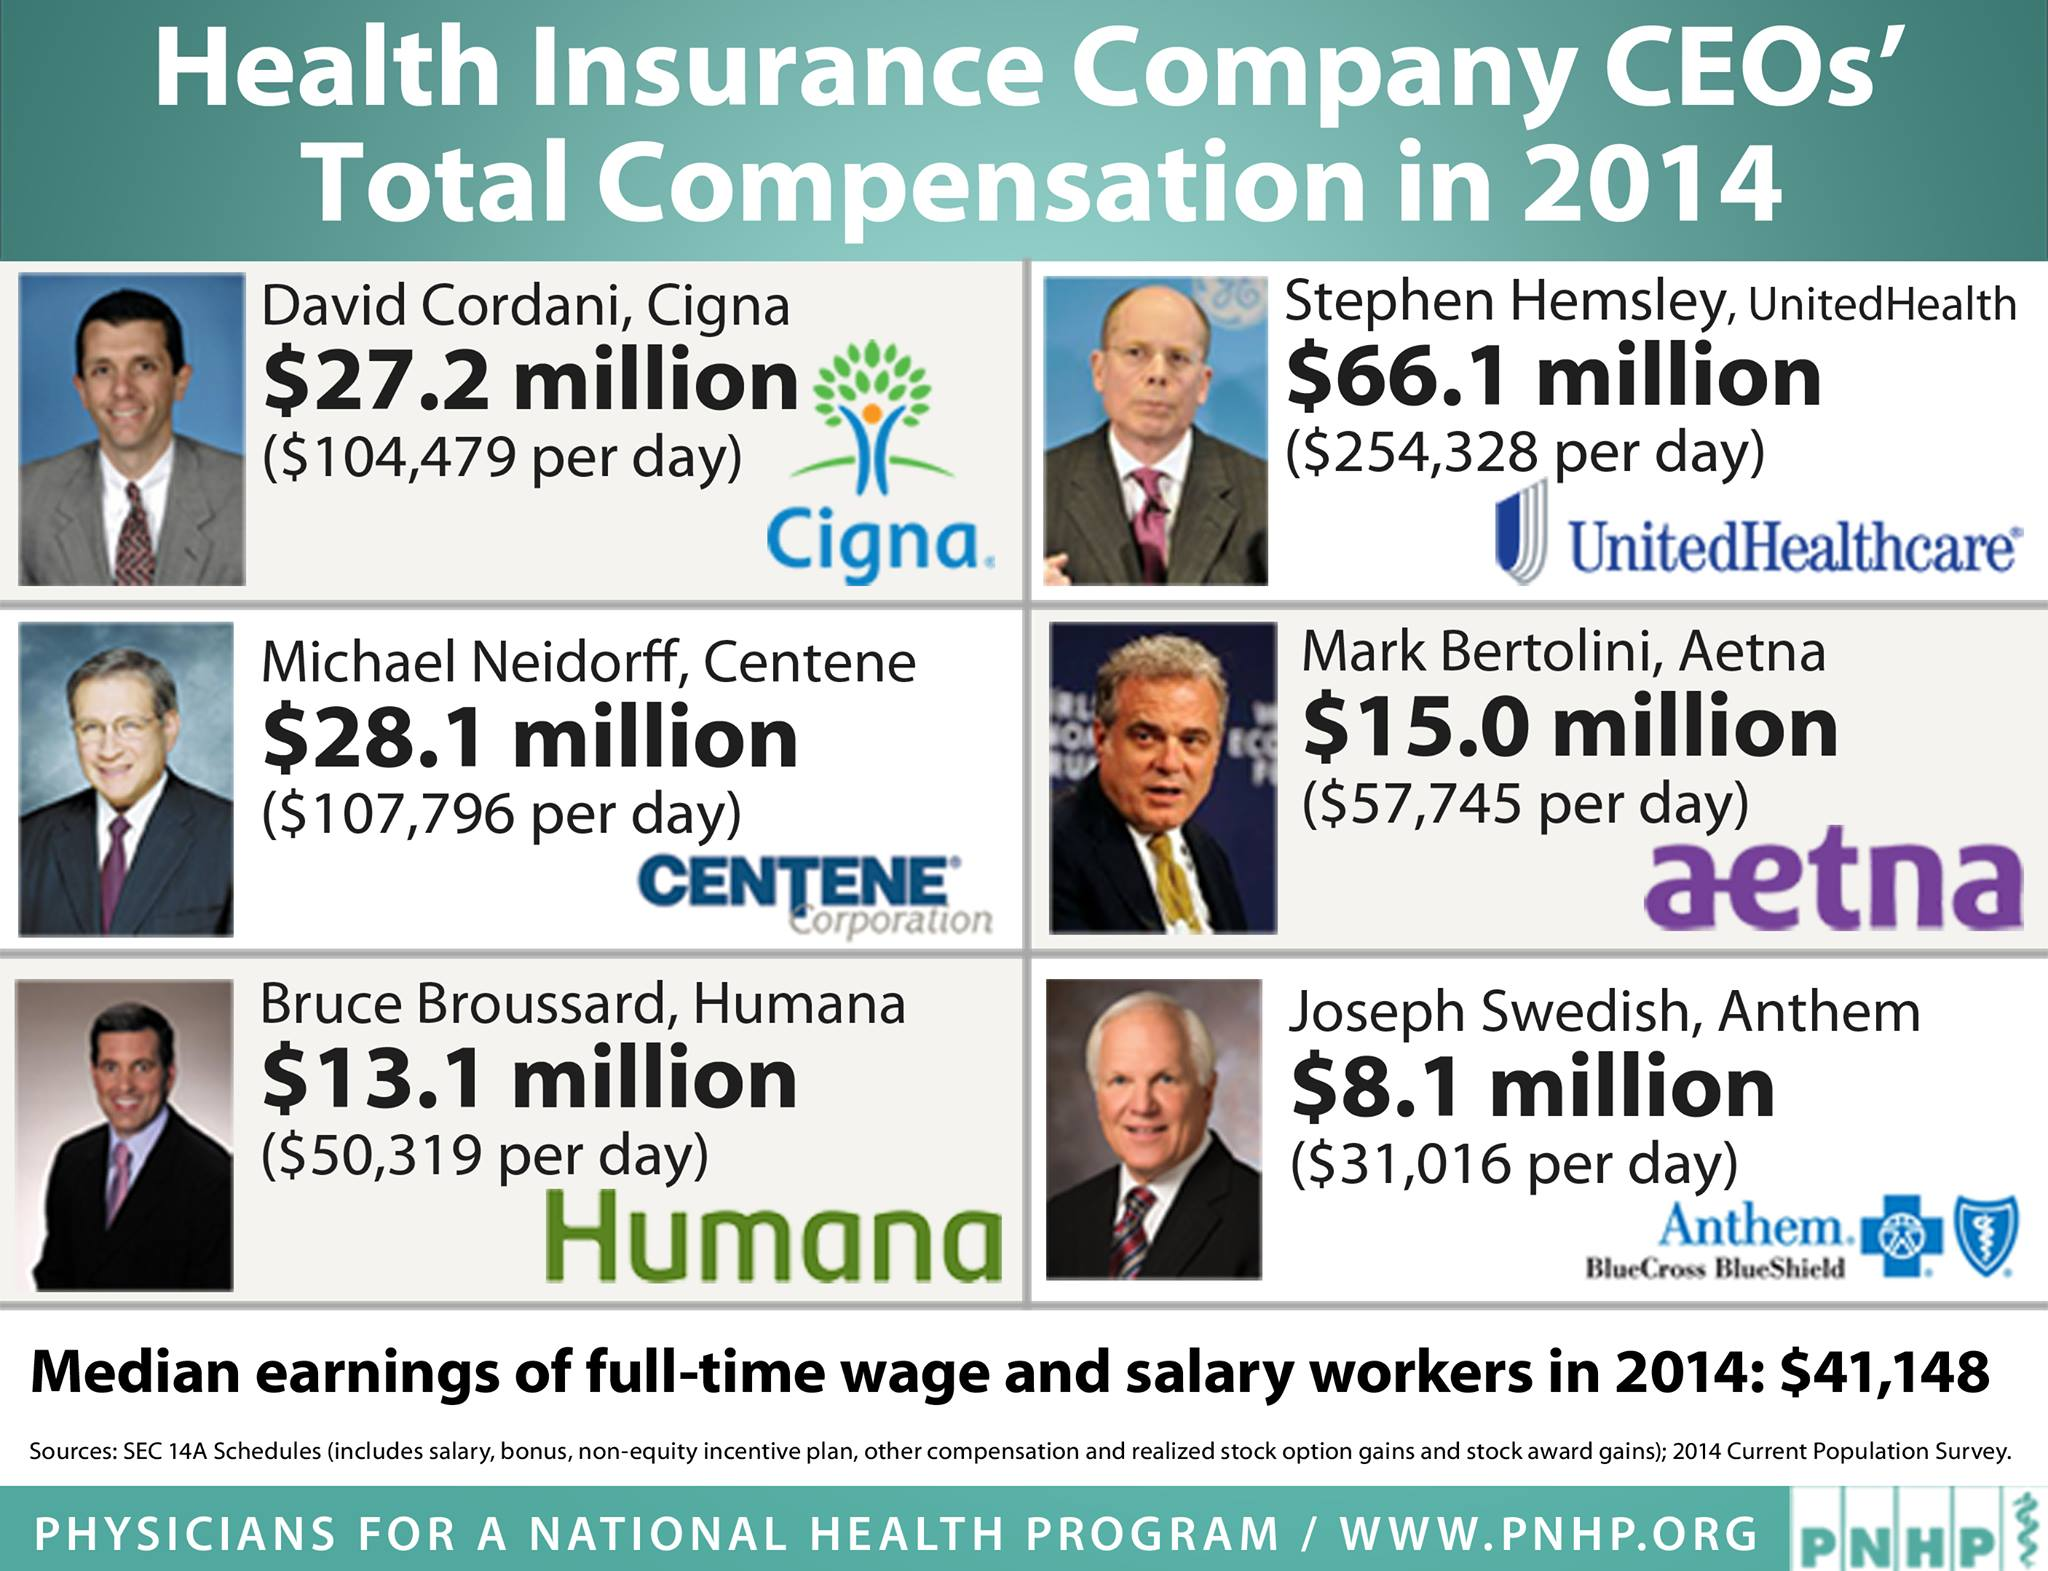 This is what healthcare leadership looks like...